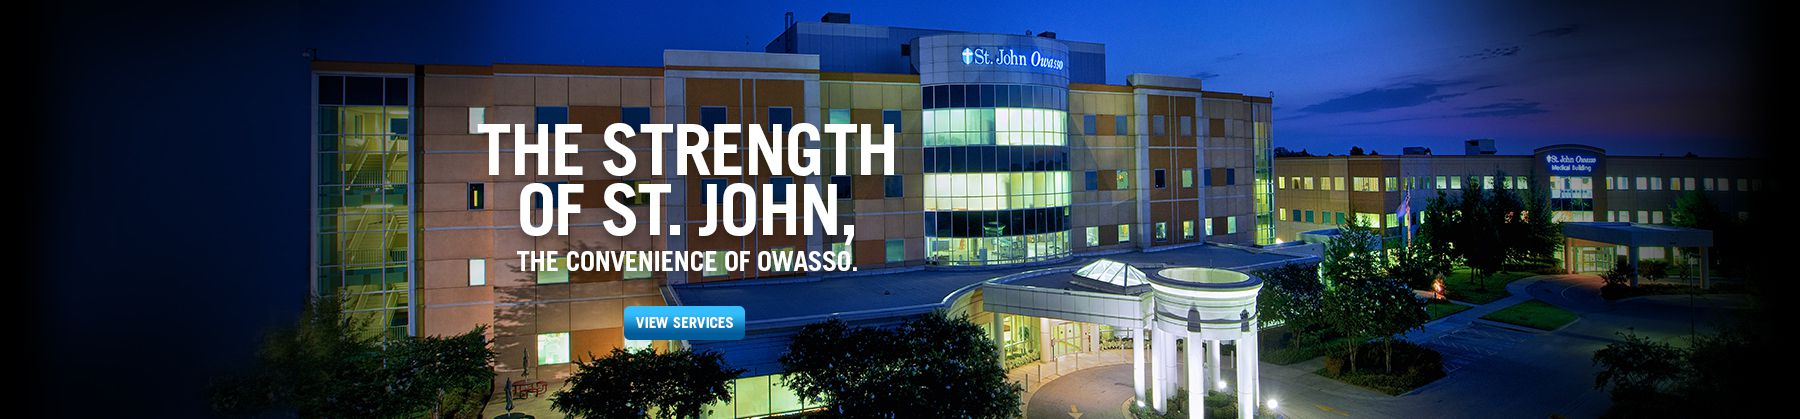 The Strength of St John the Convenience of Owasso.